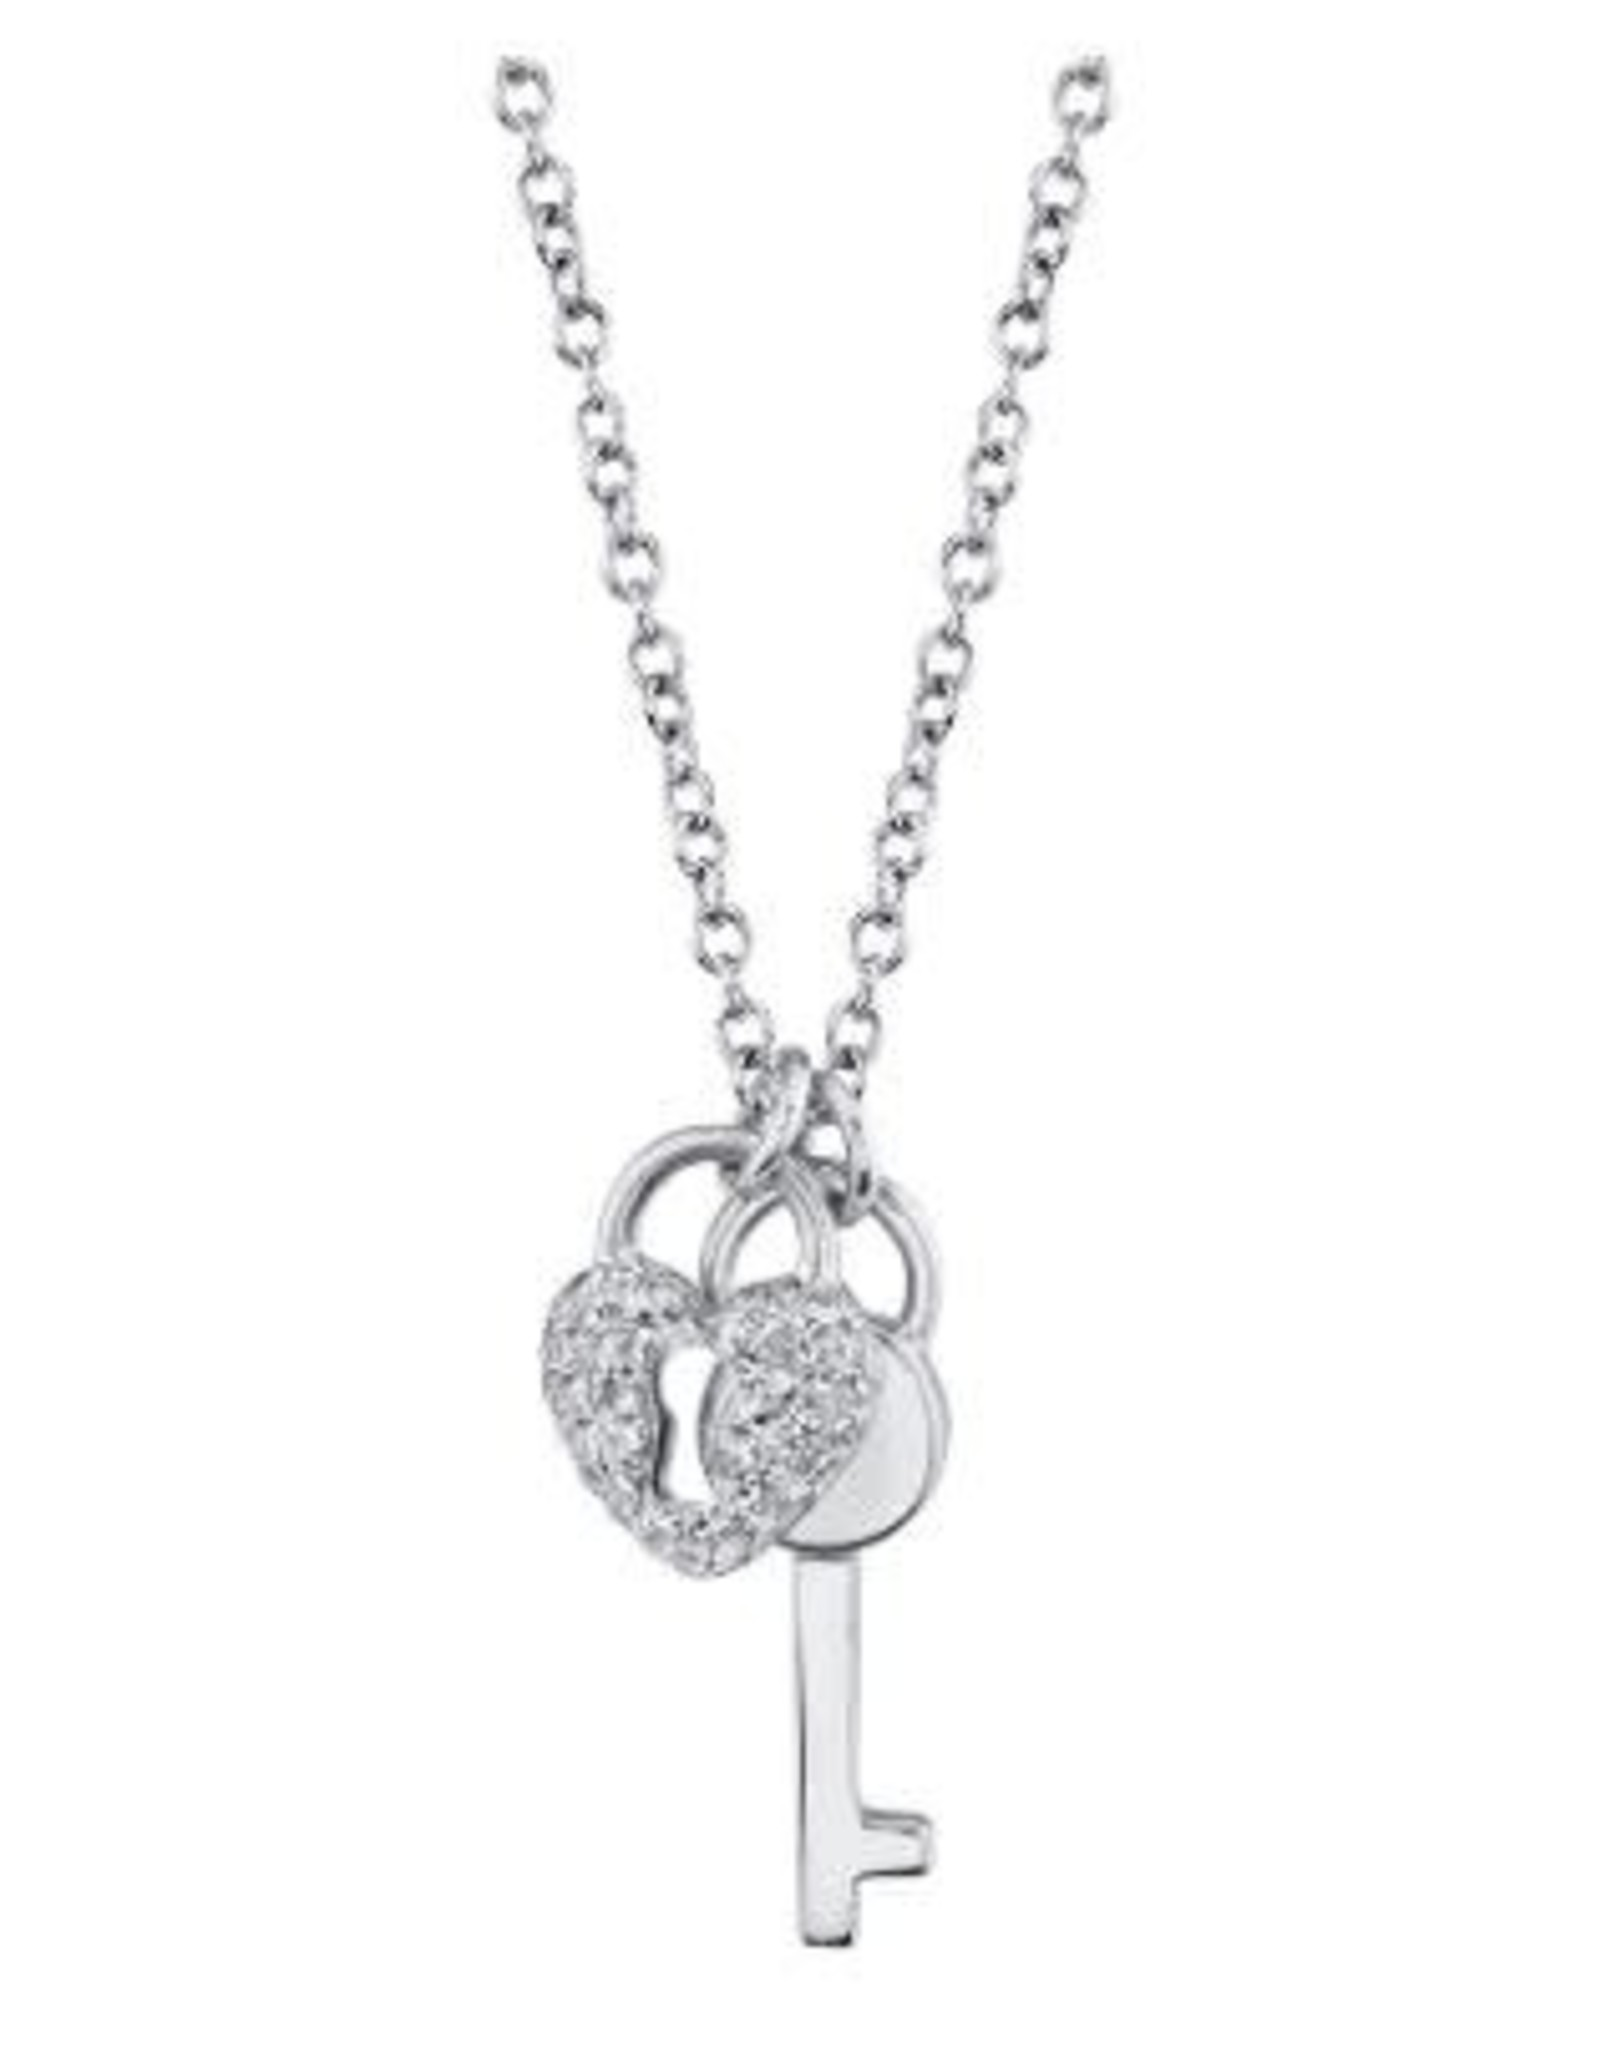 14K White Gold  Diamond Lock and Key Necklace, D: 0.11ct